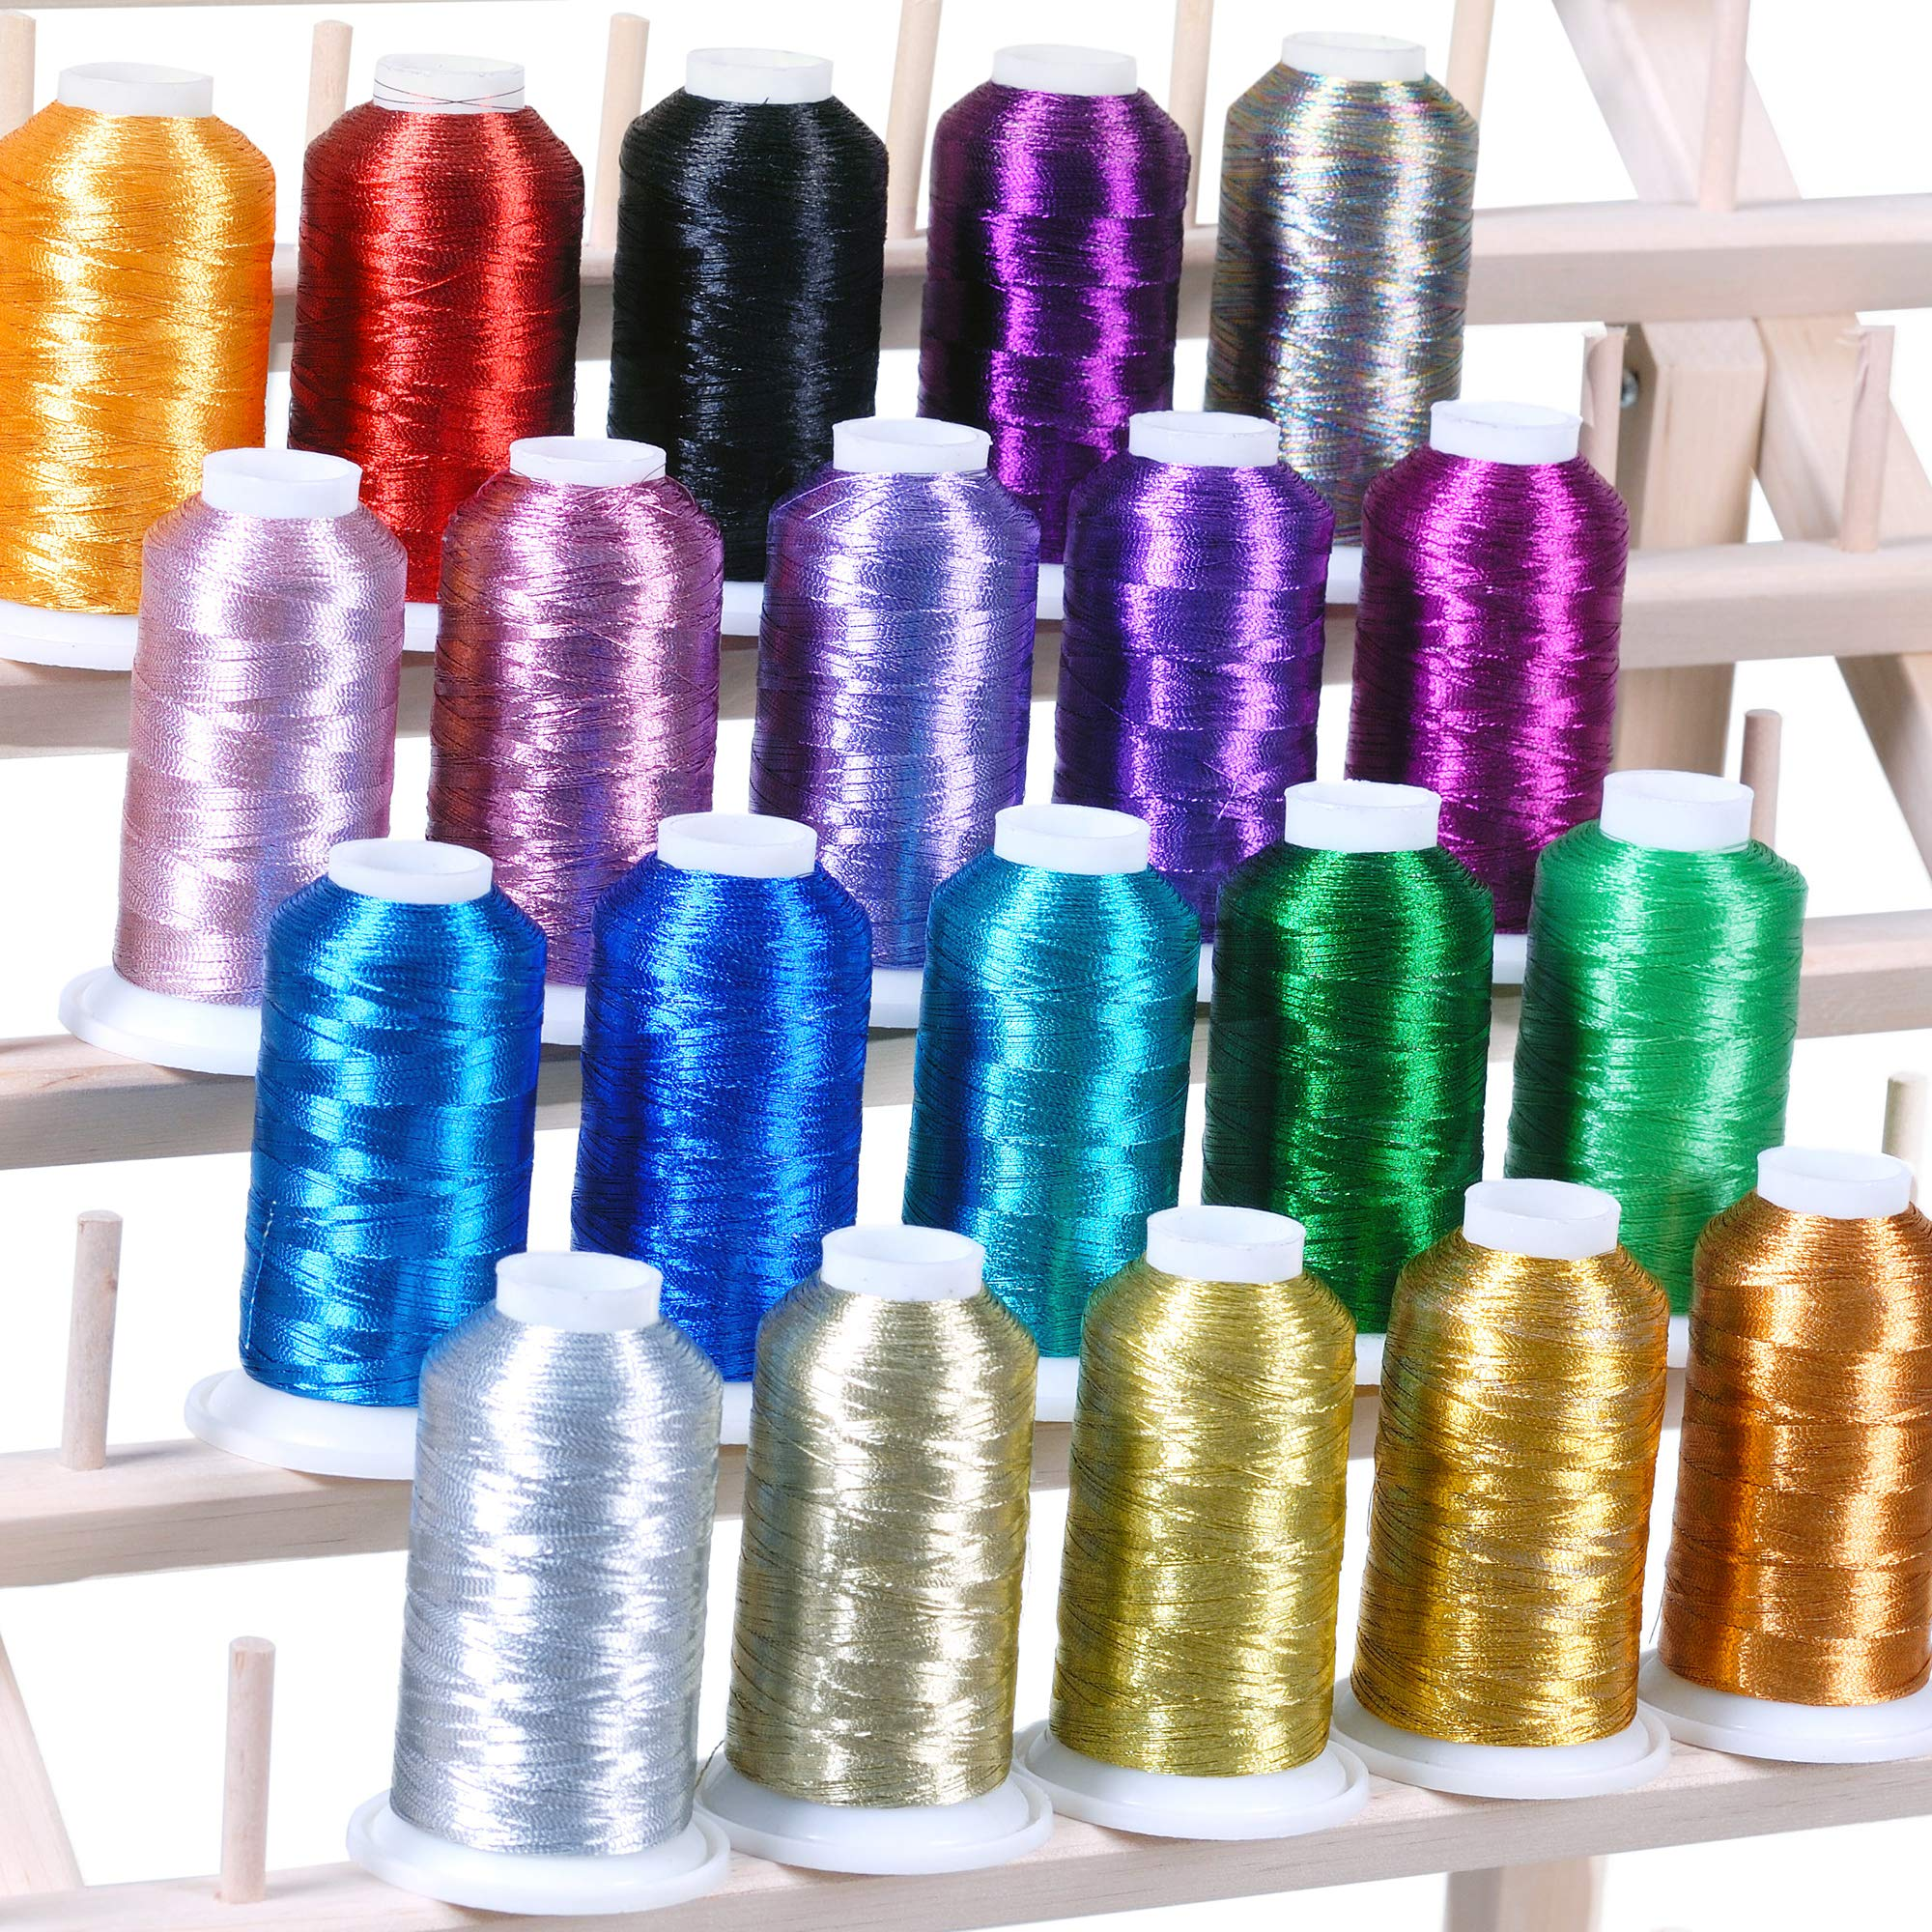 20 Metallic Embroidery Threads 1100 yards for Computerized Machines For Brother Babylock Janome Singer Pfaff Husqvaran Bernina Machine by ThreadNanny